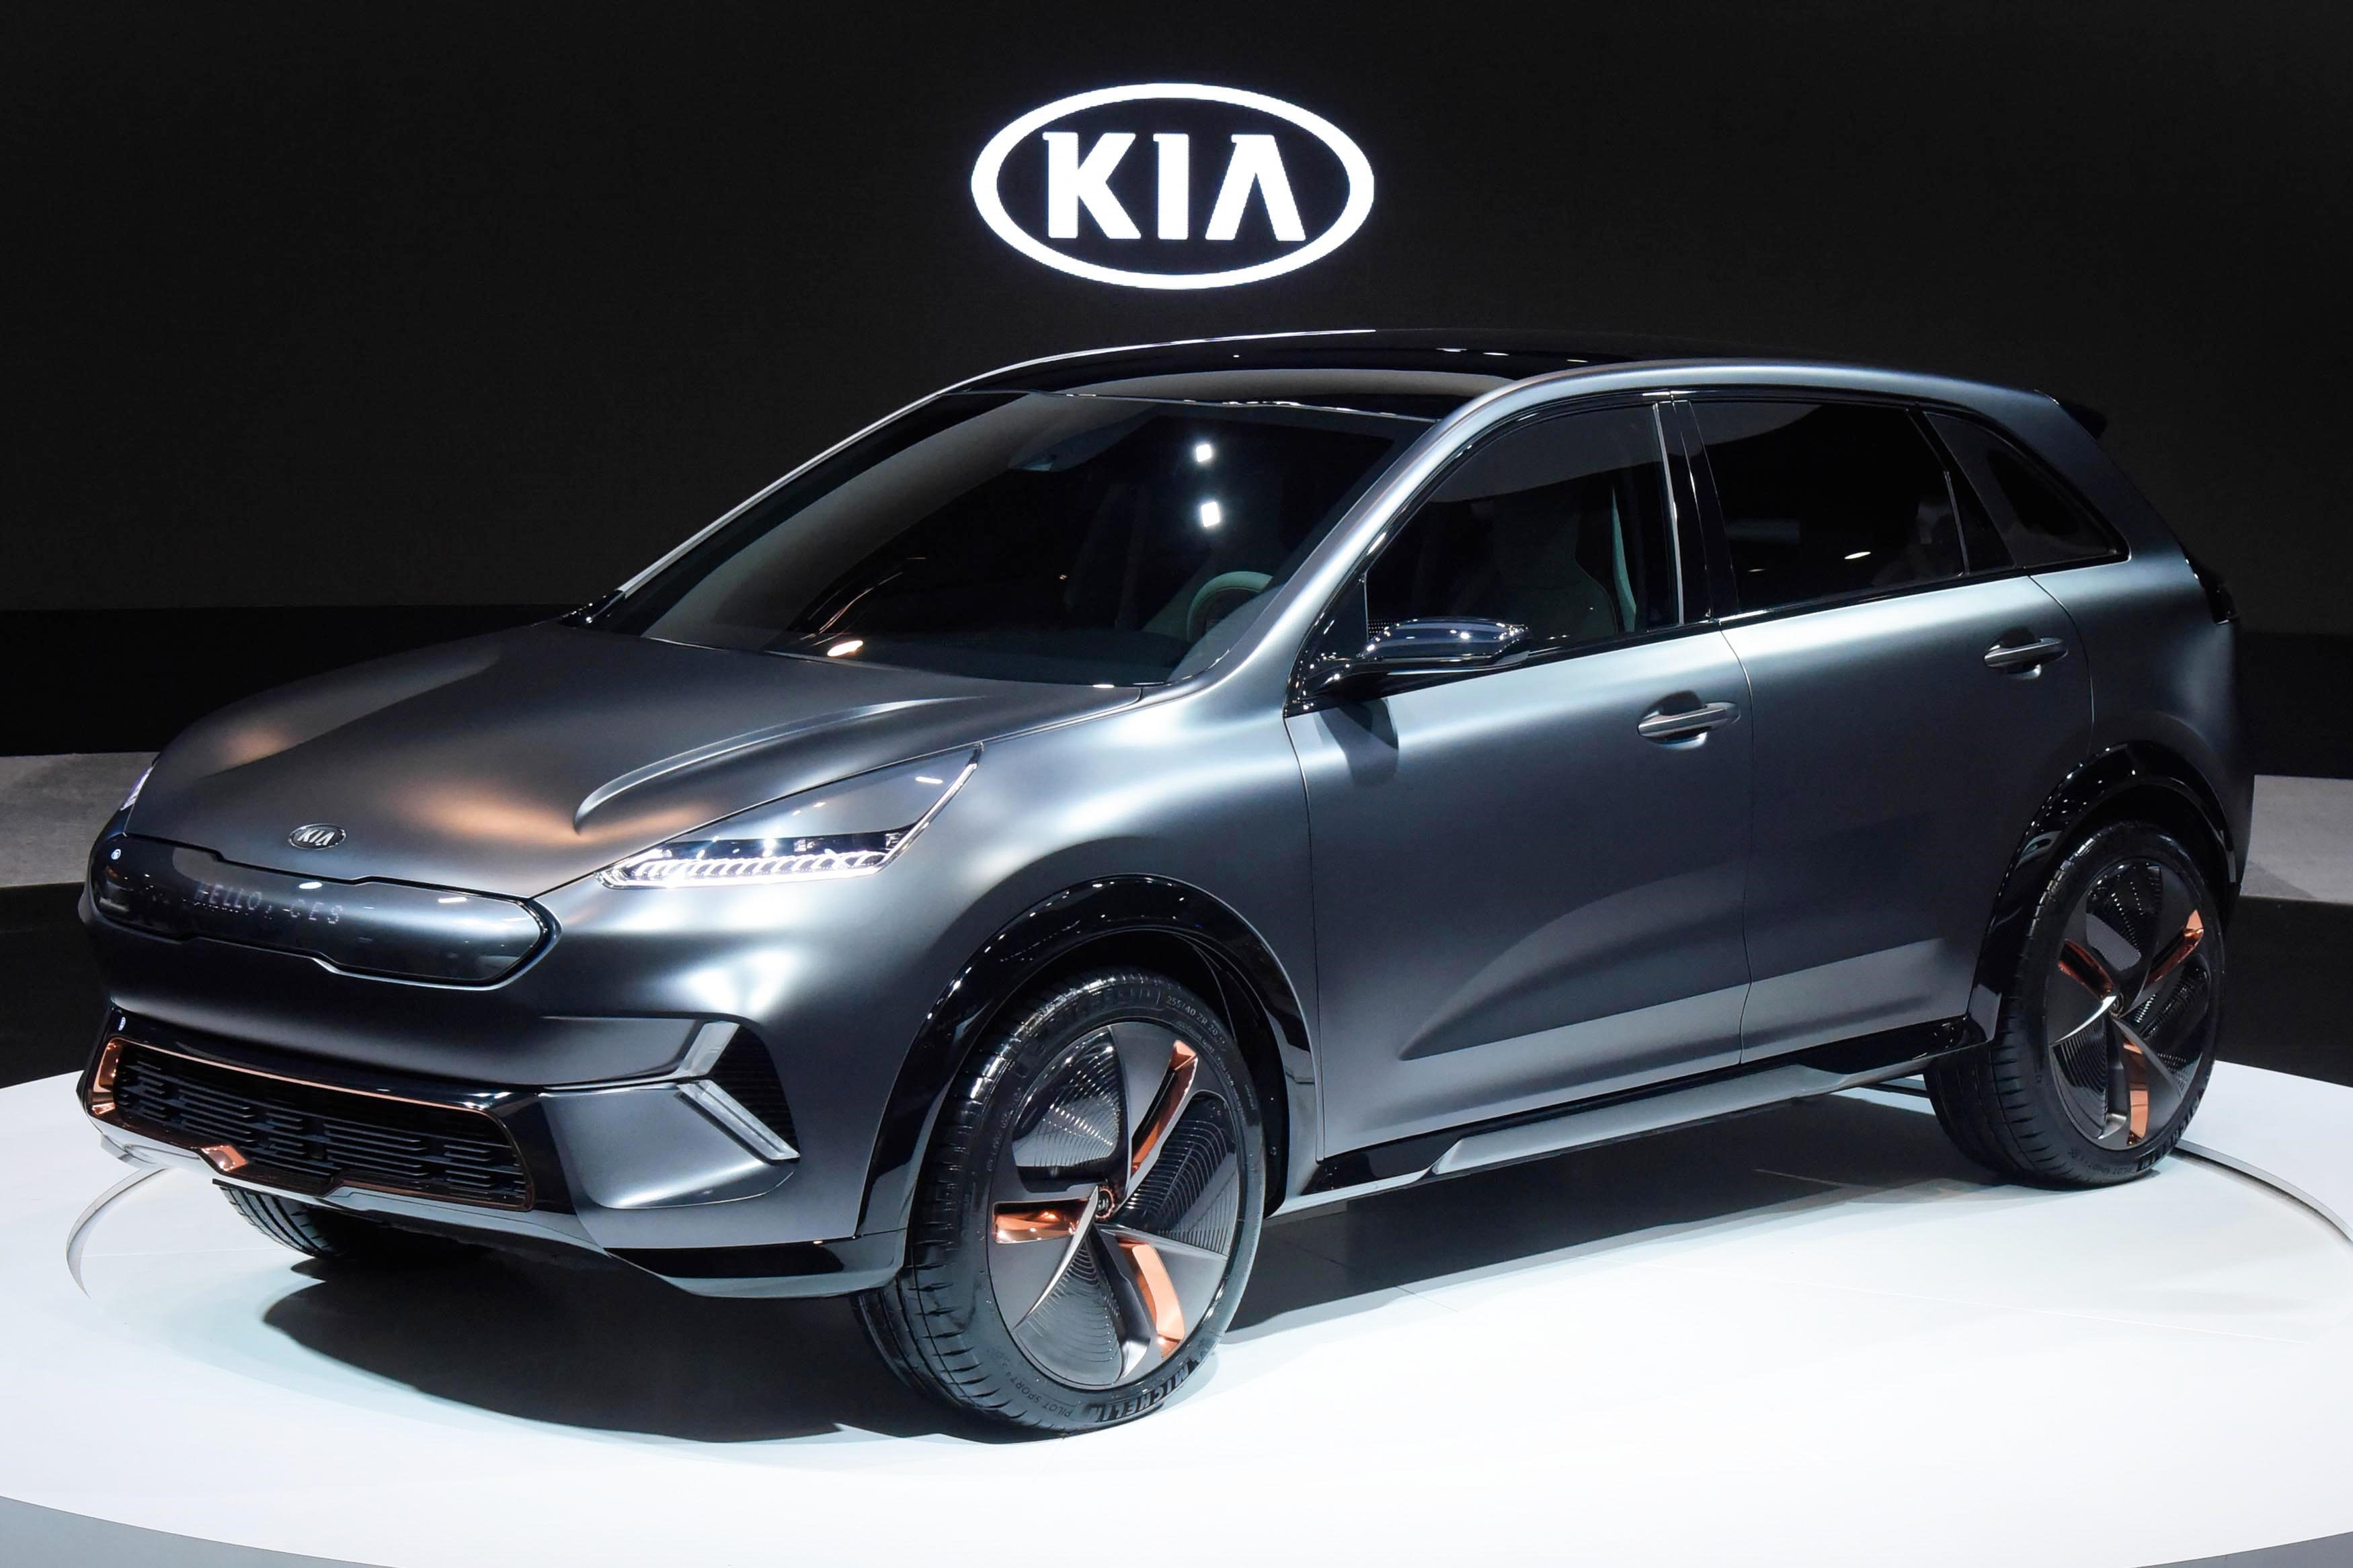 Kia Presents its Vision for Future Mobility at CES 2018